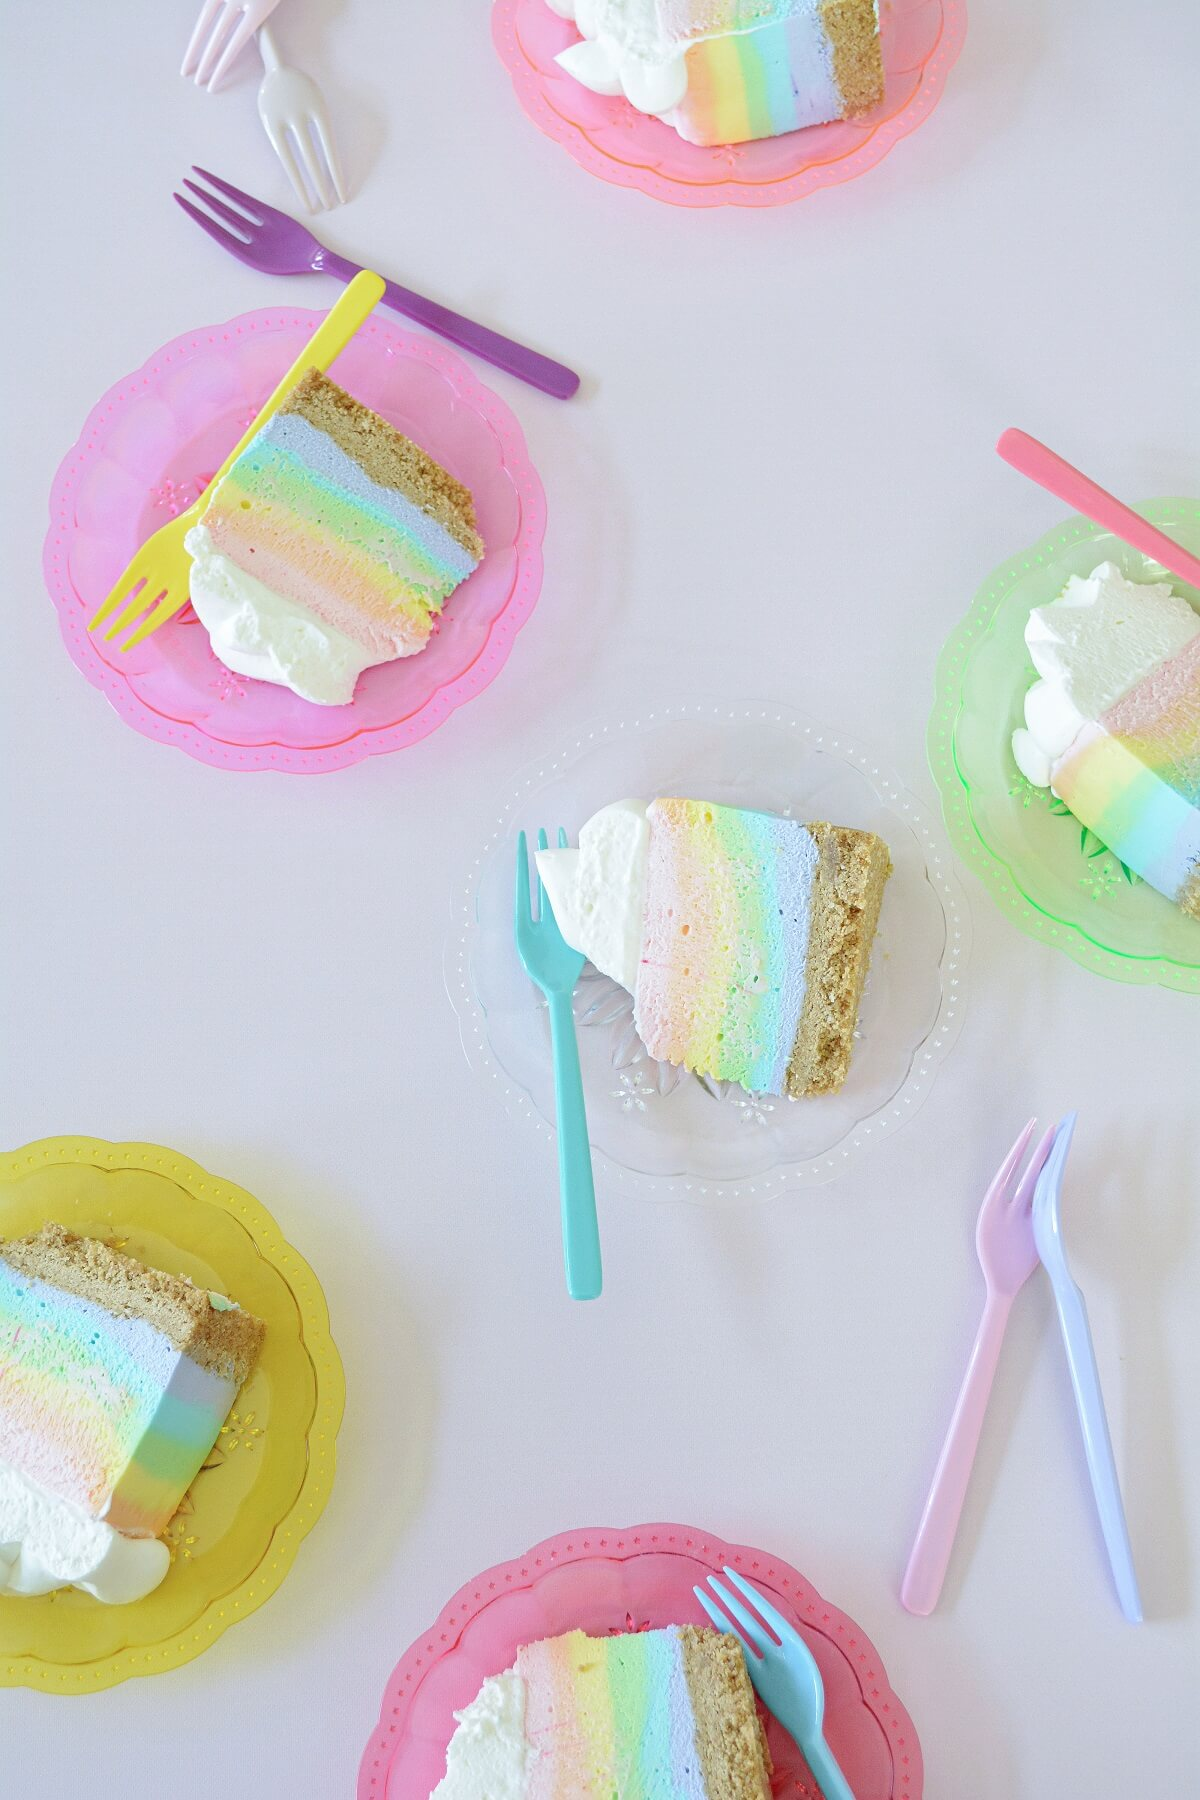 Slices of rainbow cheesecake on colorful plates.